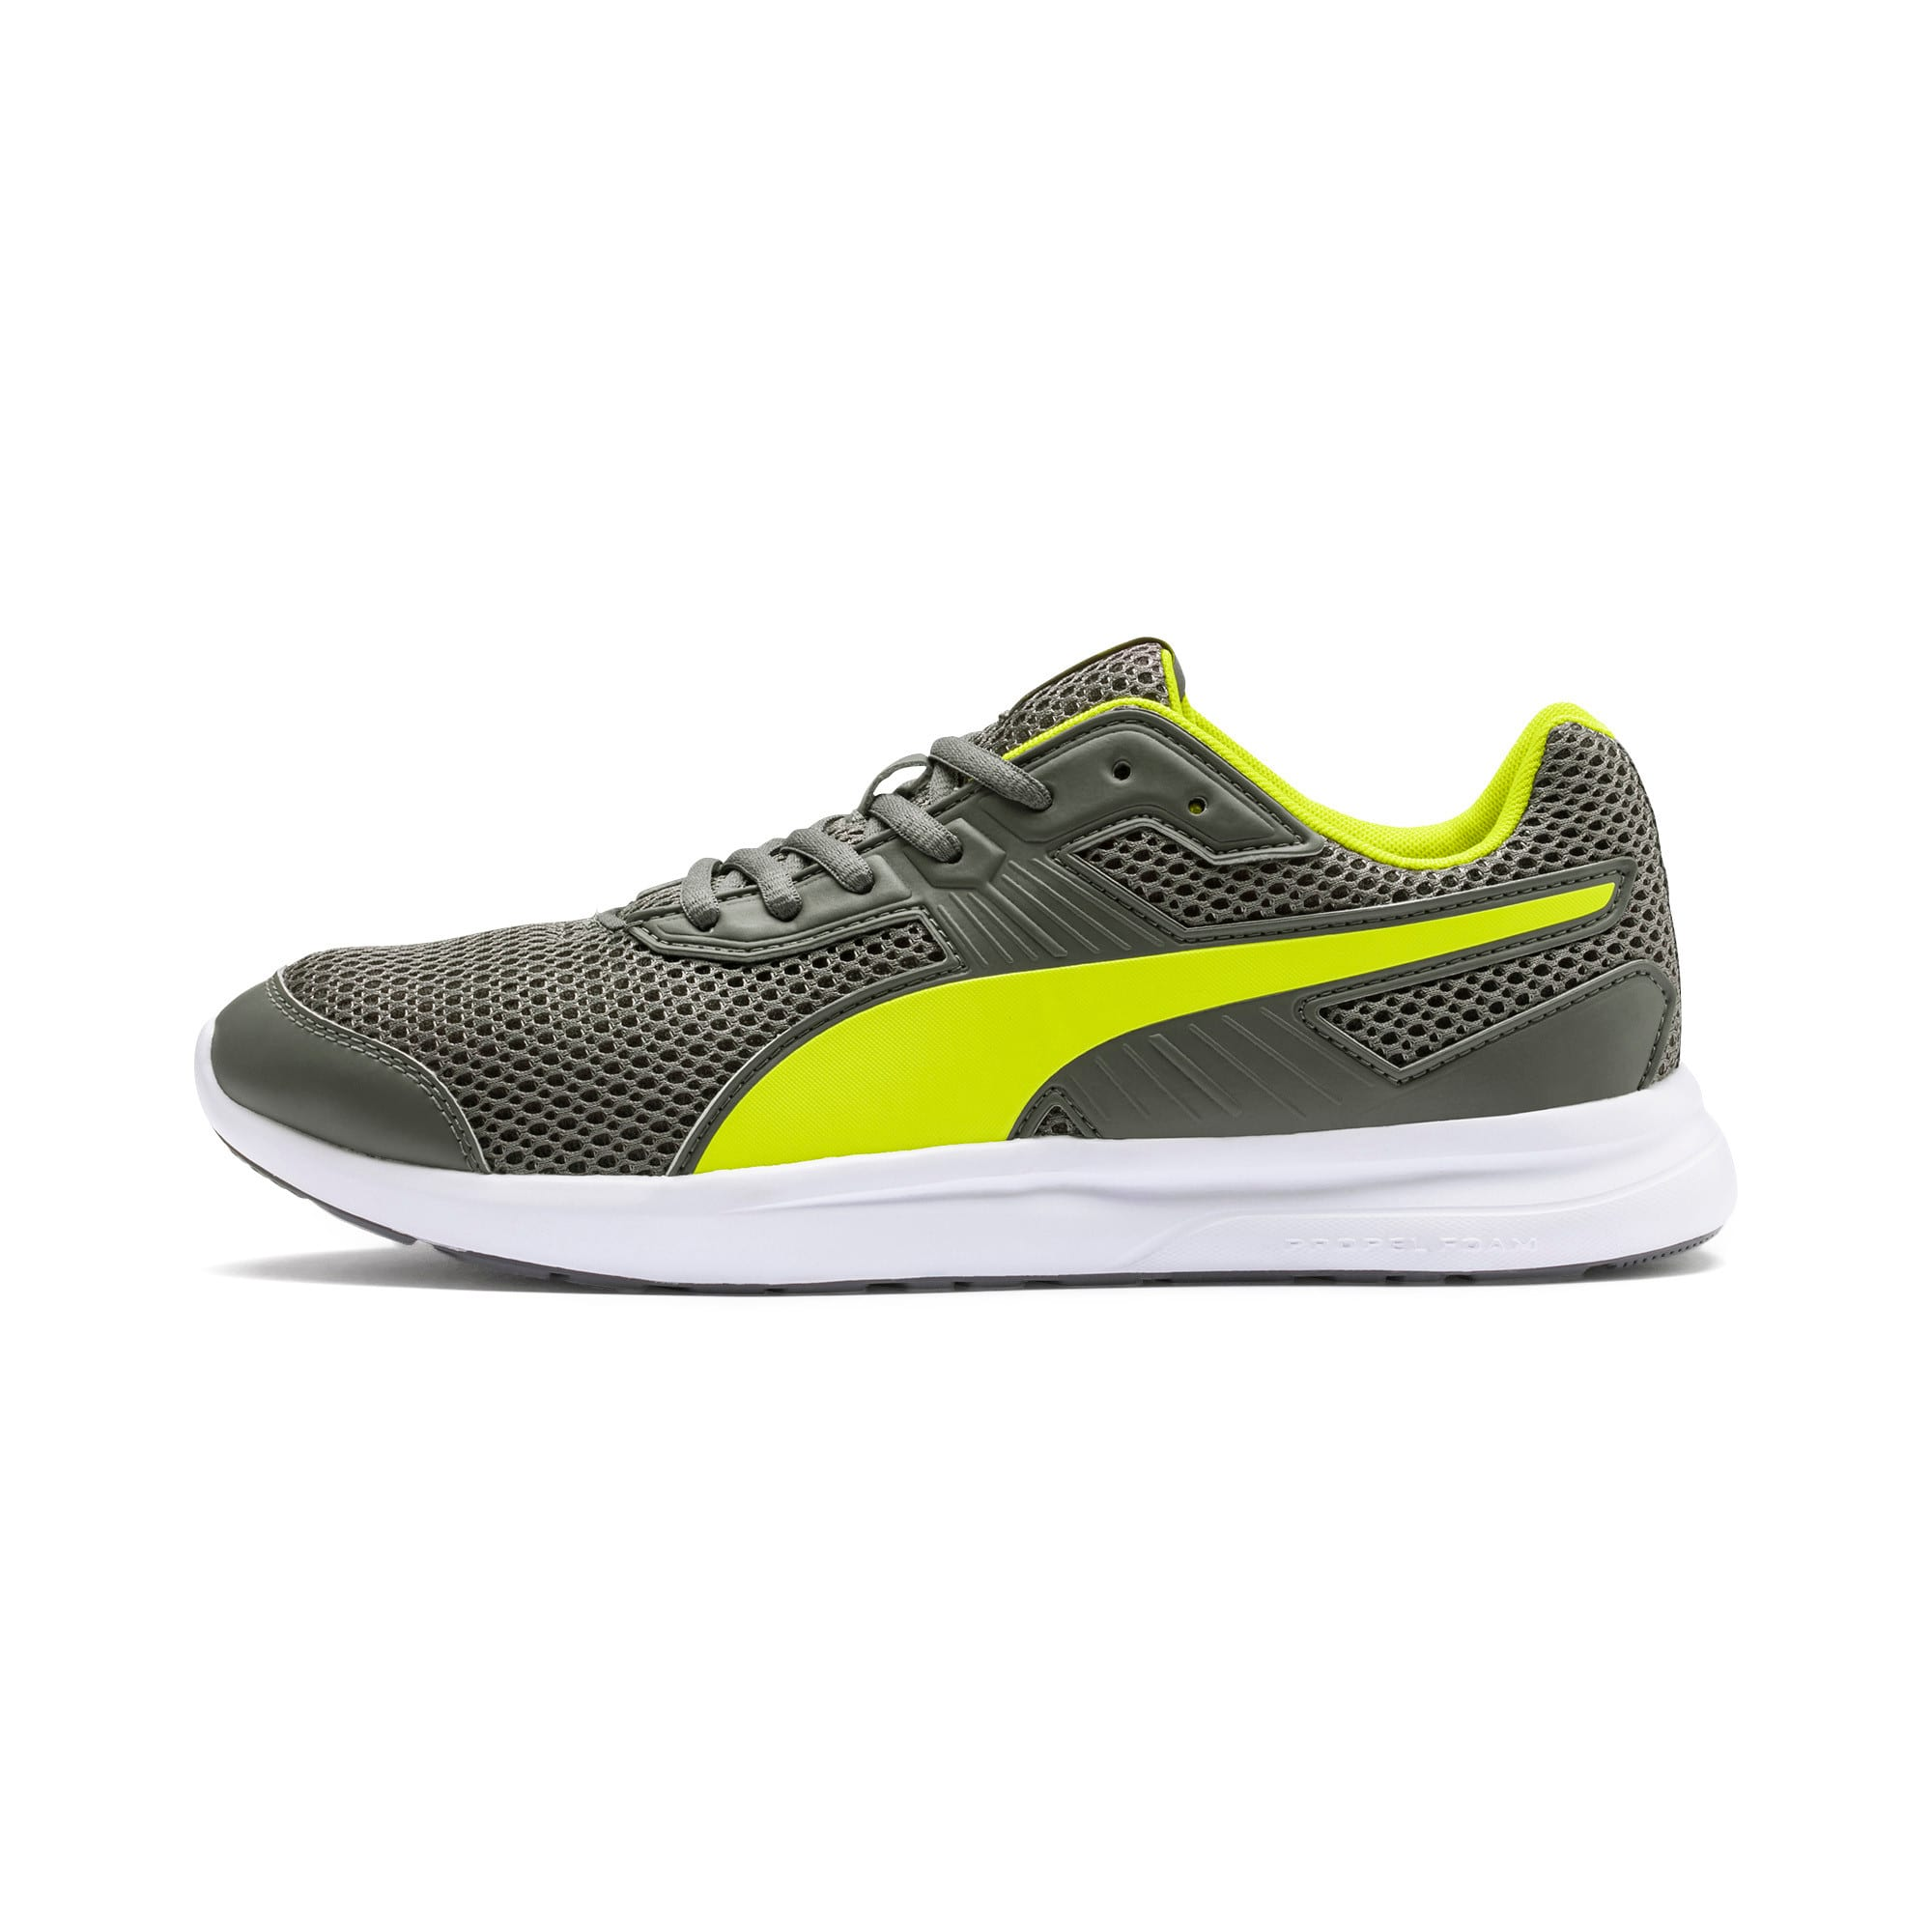 Thumbnail 1 of Escaper Training Shoes, CASTLEROCK-Nrgy Yellow-White, medium-IND